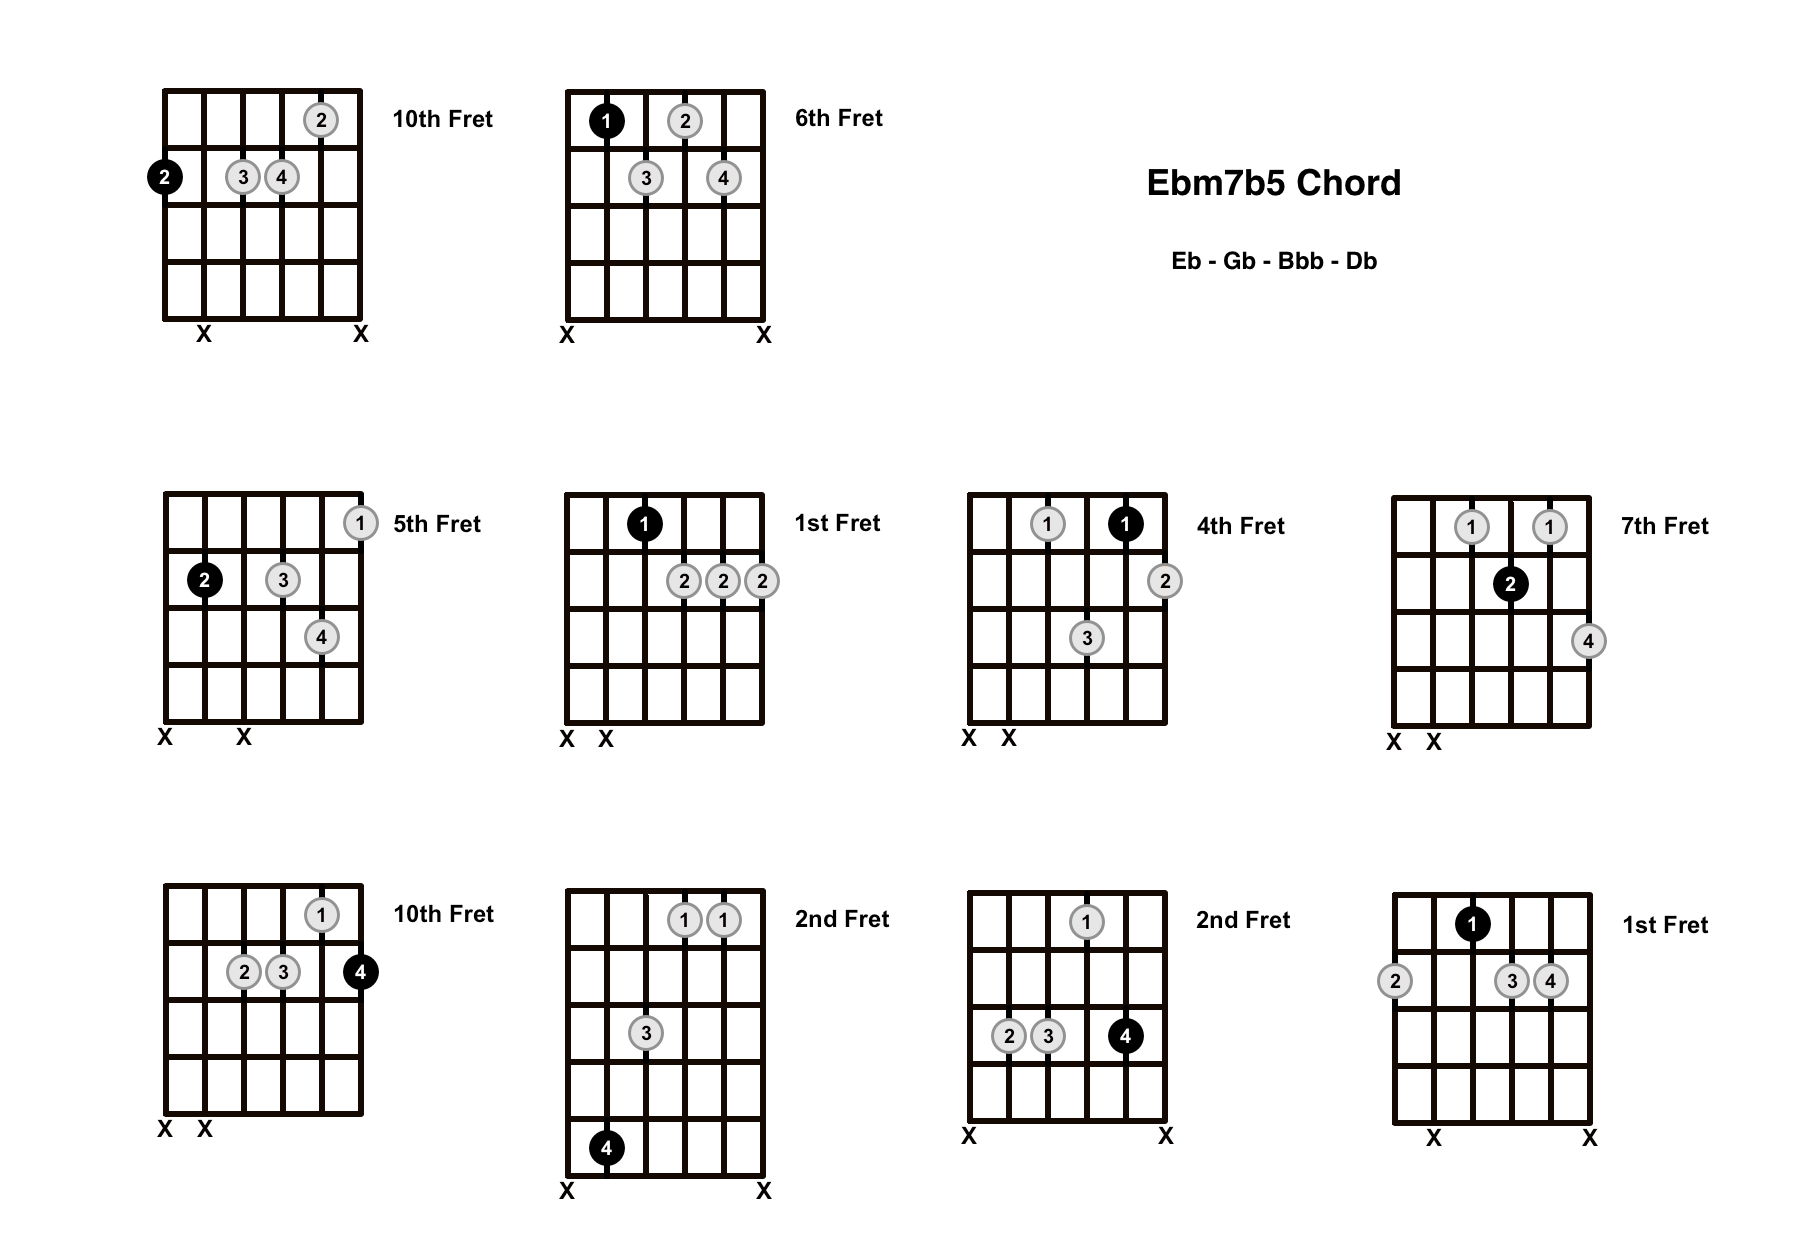 Ebm7b5 Chord On The Guitar (E Flat Minor 7 Flat 5, E Flat Half Diminished) – Diagrams, Finger Positions and Theory